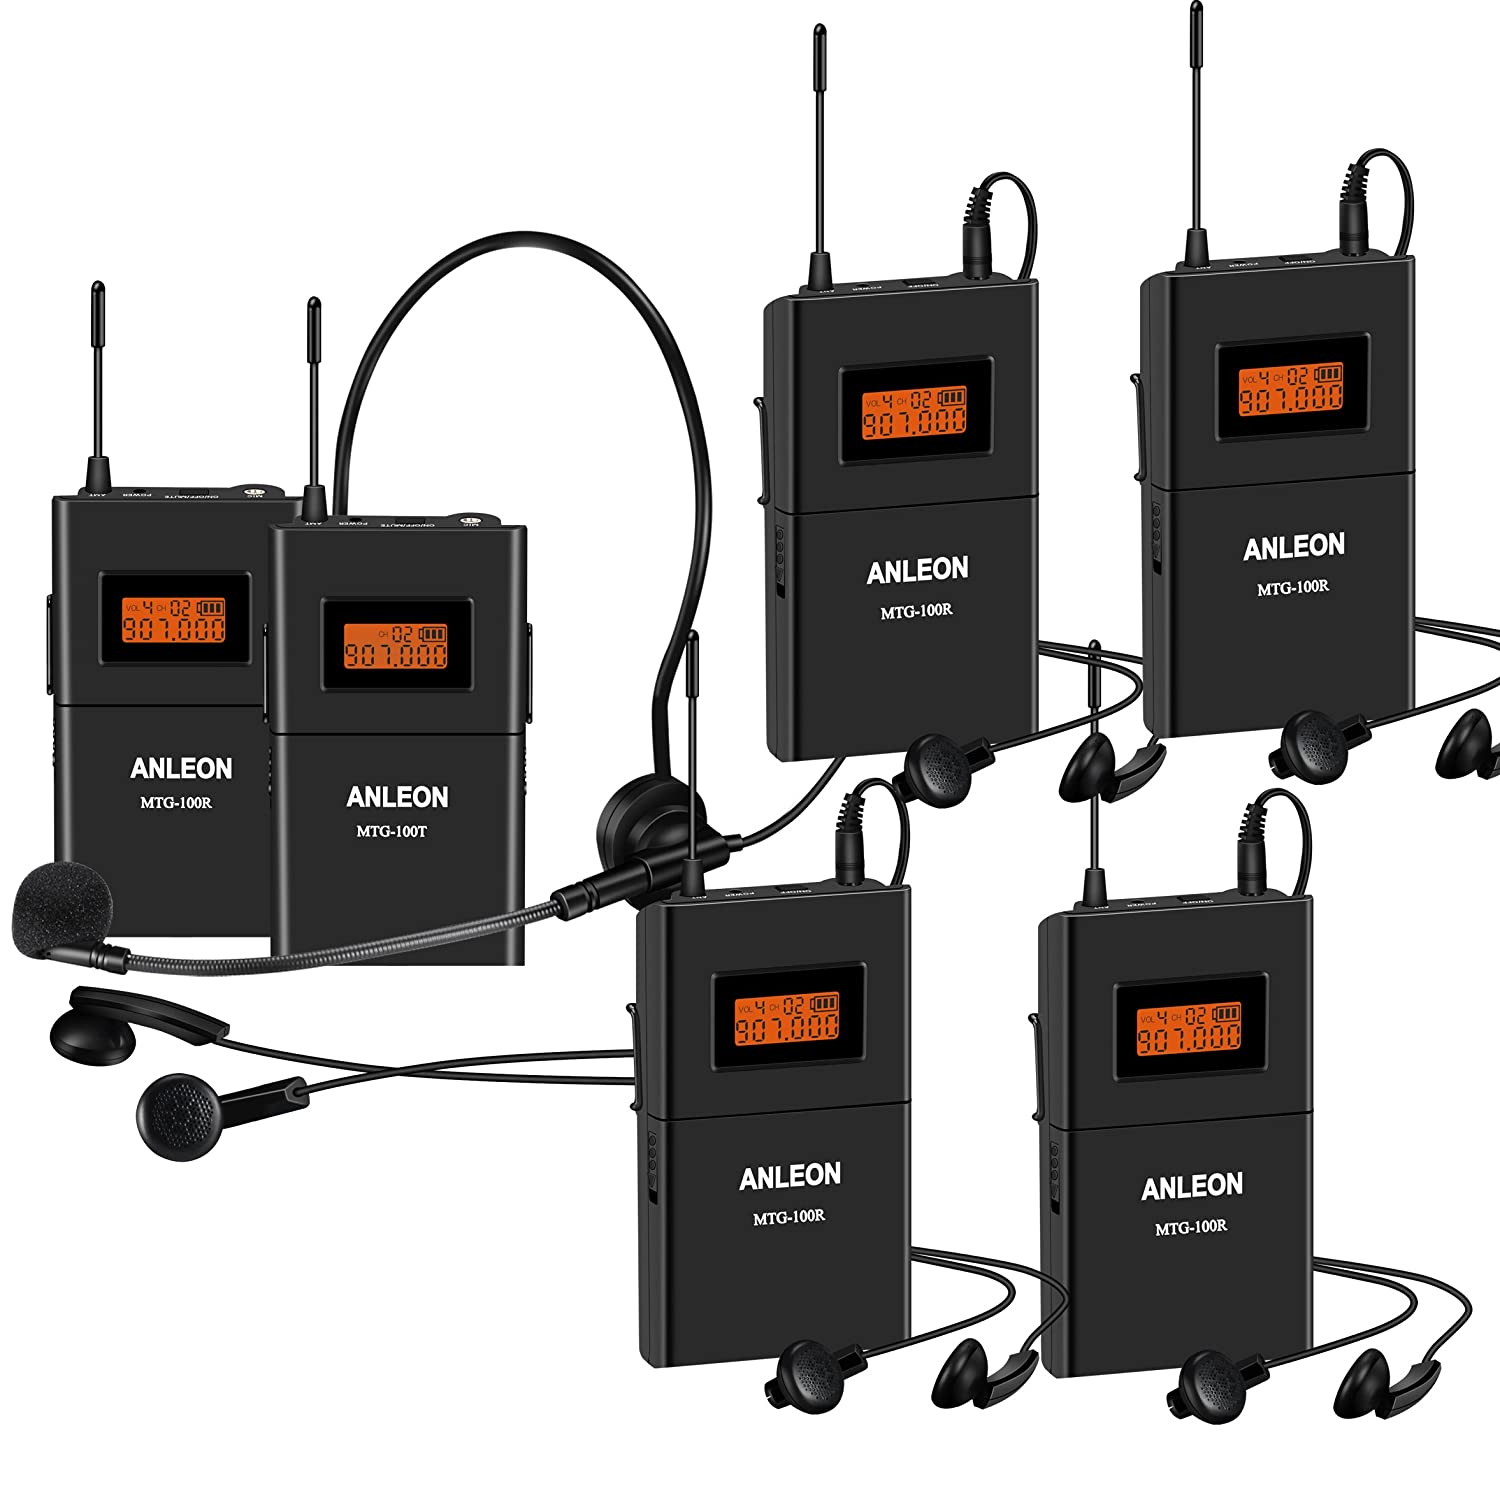 Anleon 902mhz-927mhz Tour Guide Wireless System Church System translation equipment simultaneous interpretation equipment 1 Transmitter and 5 Receivers